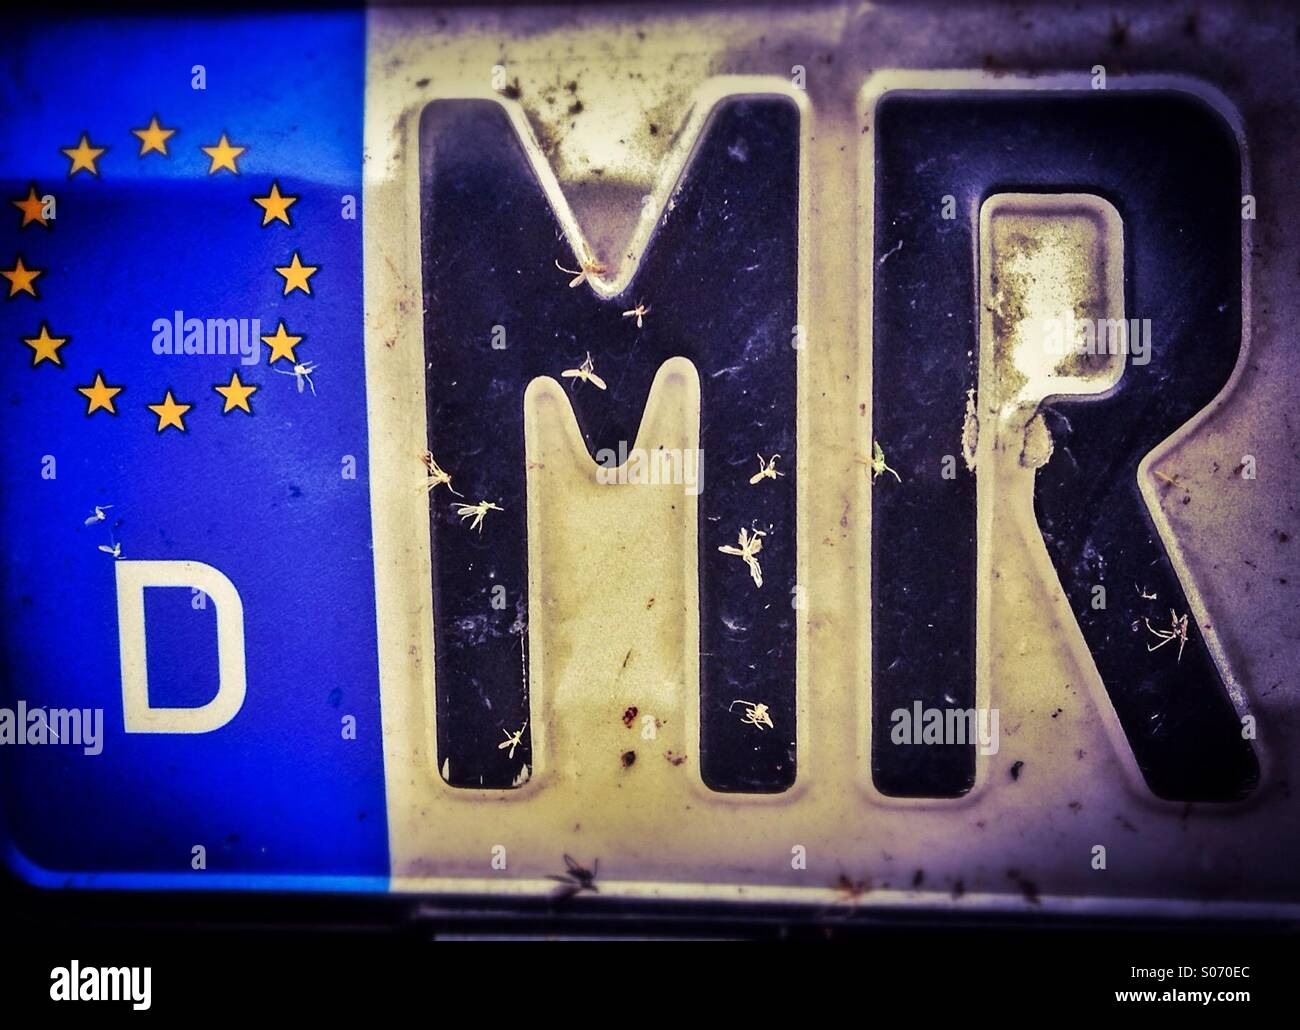 German license plate. Mr germany vehicle plate. Marburg Biedenkopf, Hessse, Germany, Europe - Stock Image